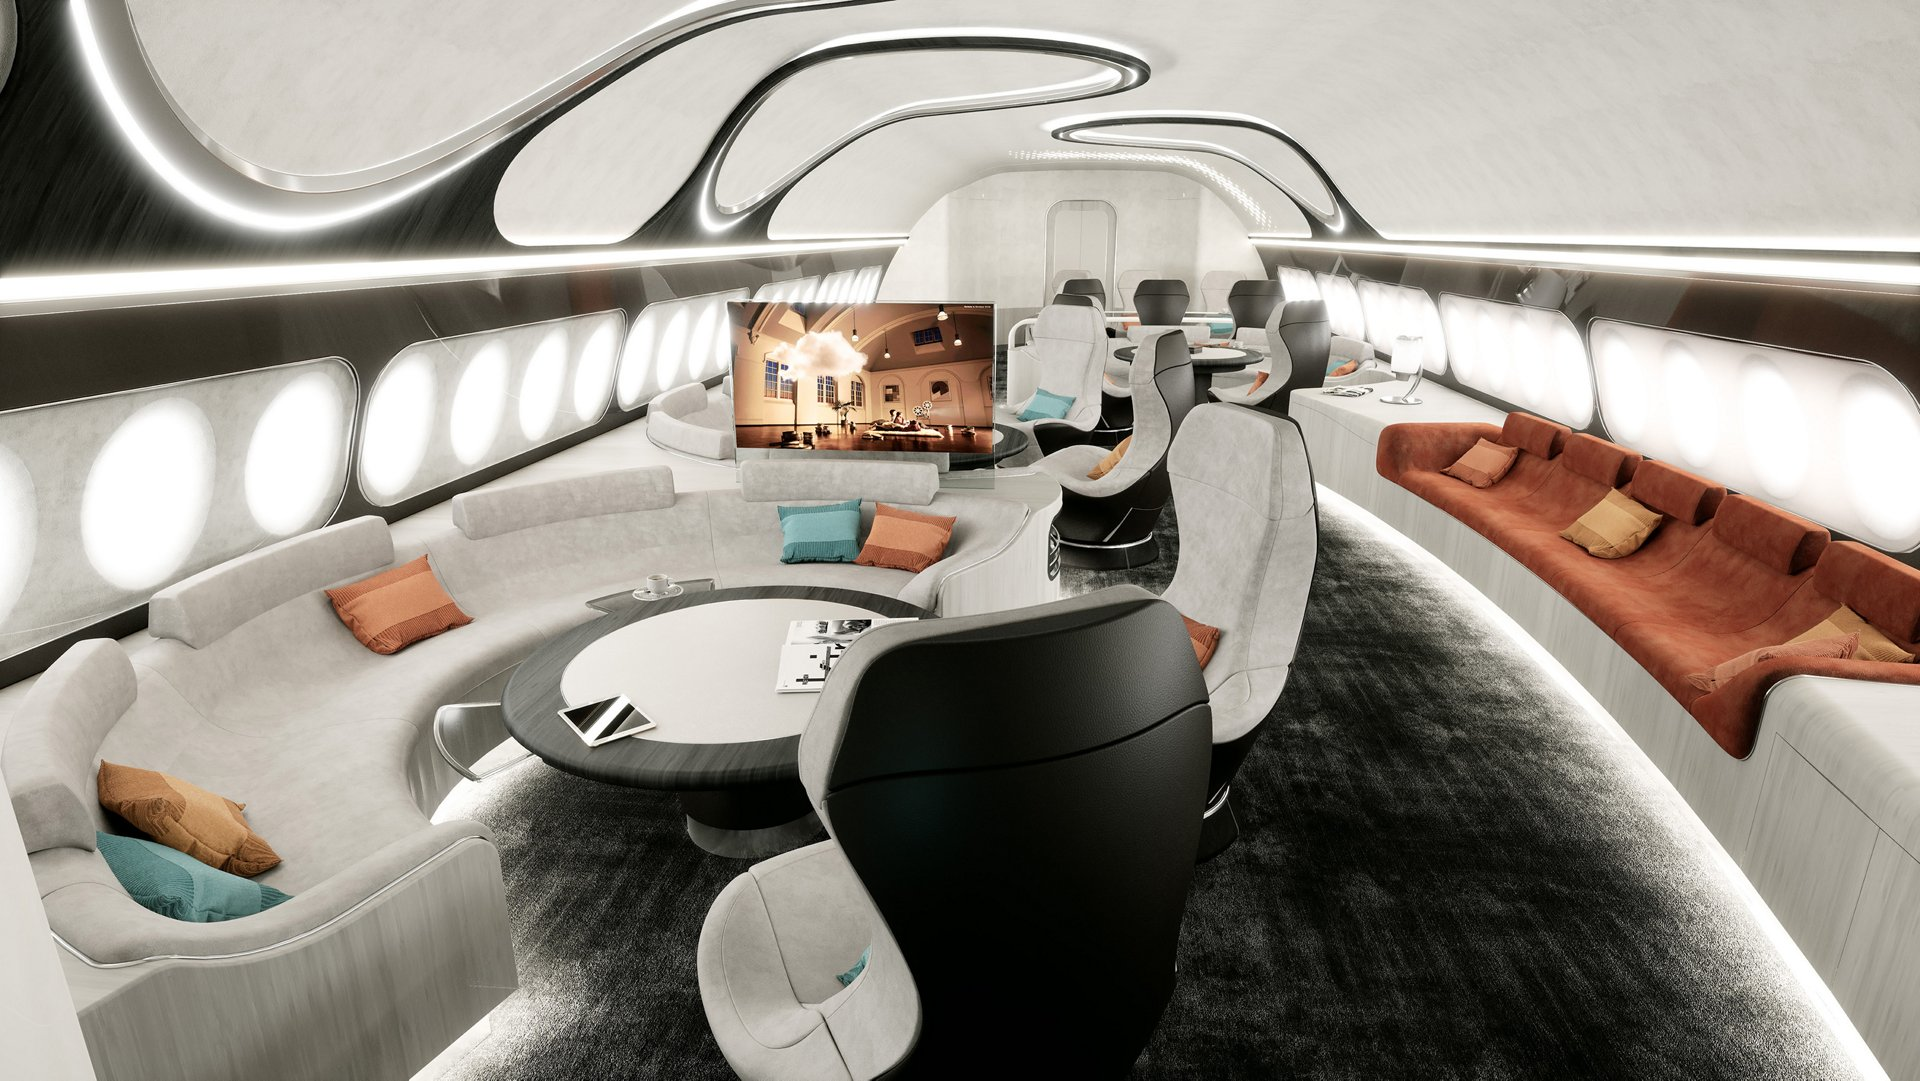 The Harmony cabin concept combines the benefits of Airbus Corporate Jets' VIP widebodies – such as comfort, space and quietness – to produce a consistently harmonious customer experience